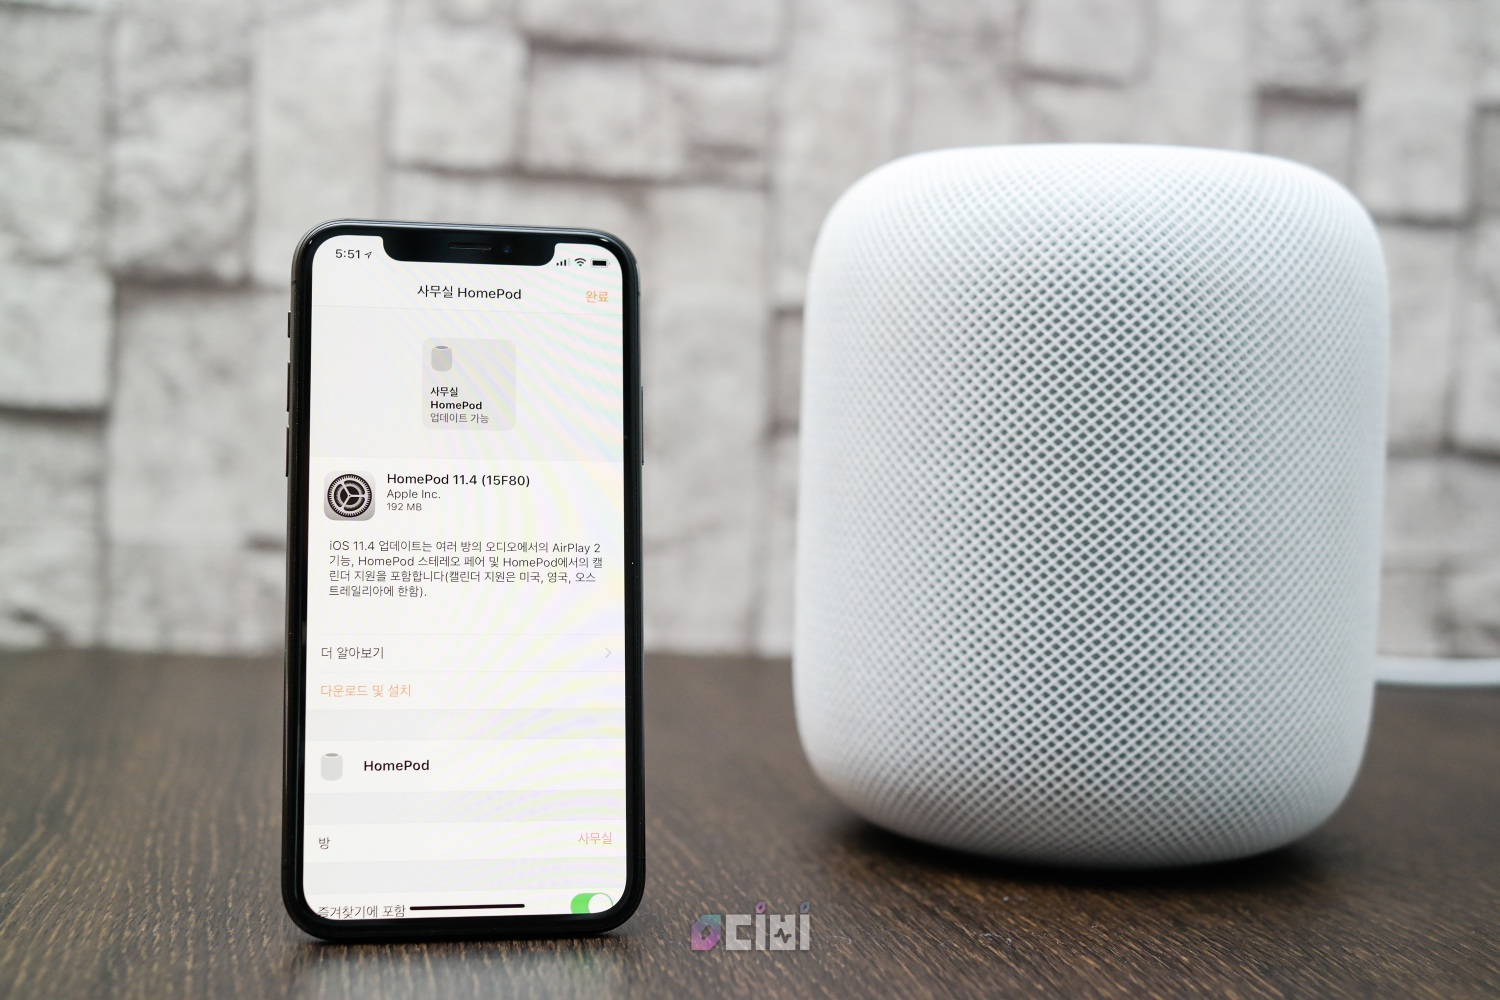 06 apple_homepod_0db_0038.jpg